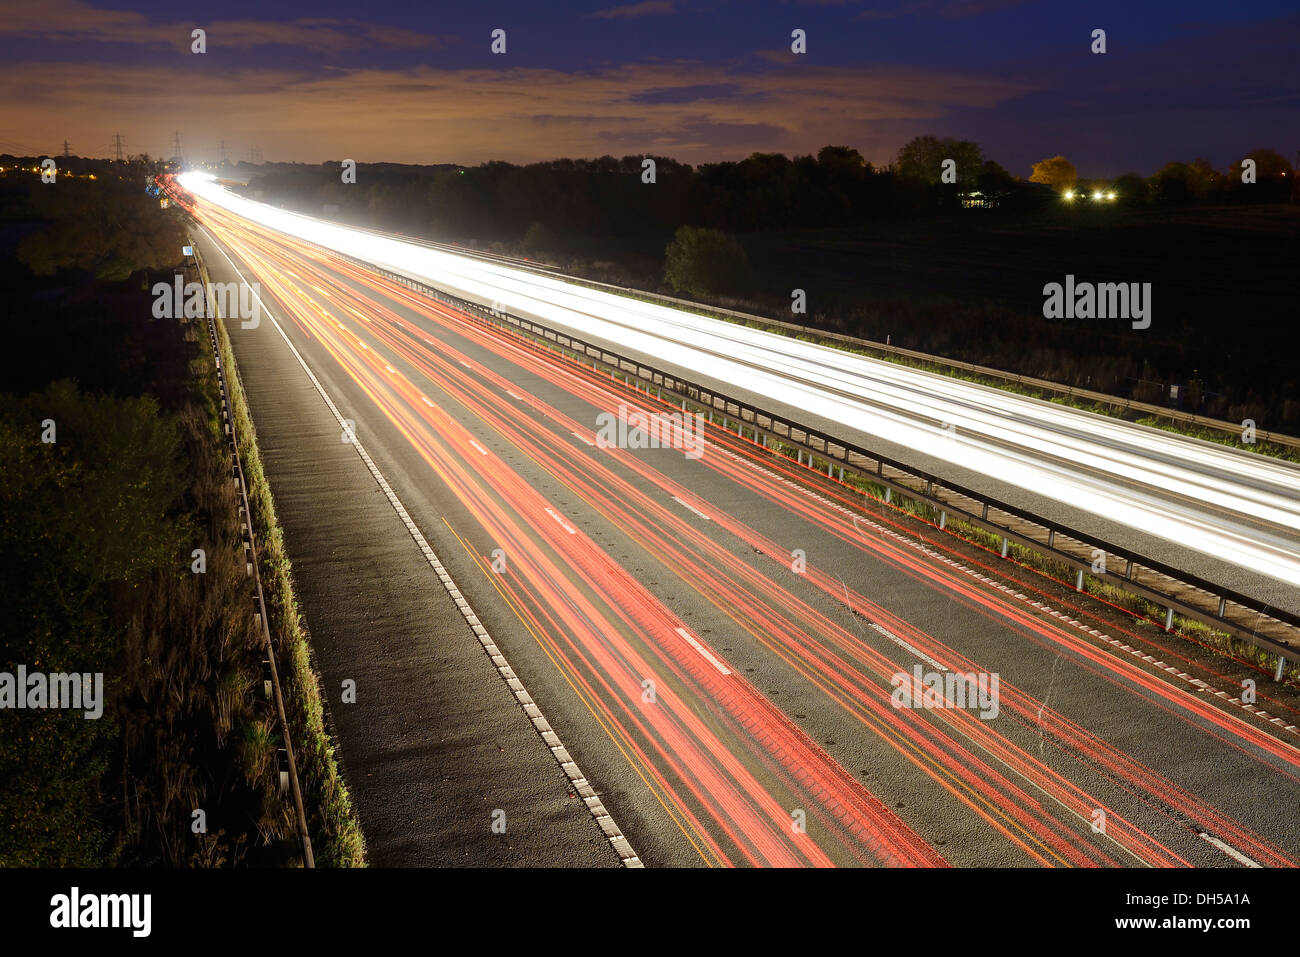 Long time exposure of evening traffic on the M56 motorway UK - Stock Image